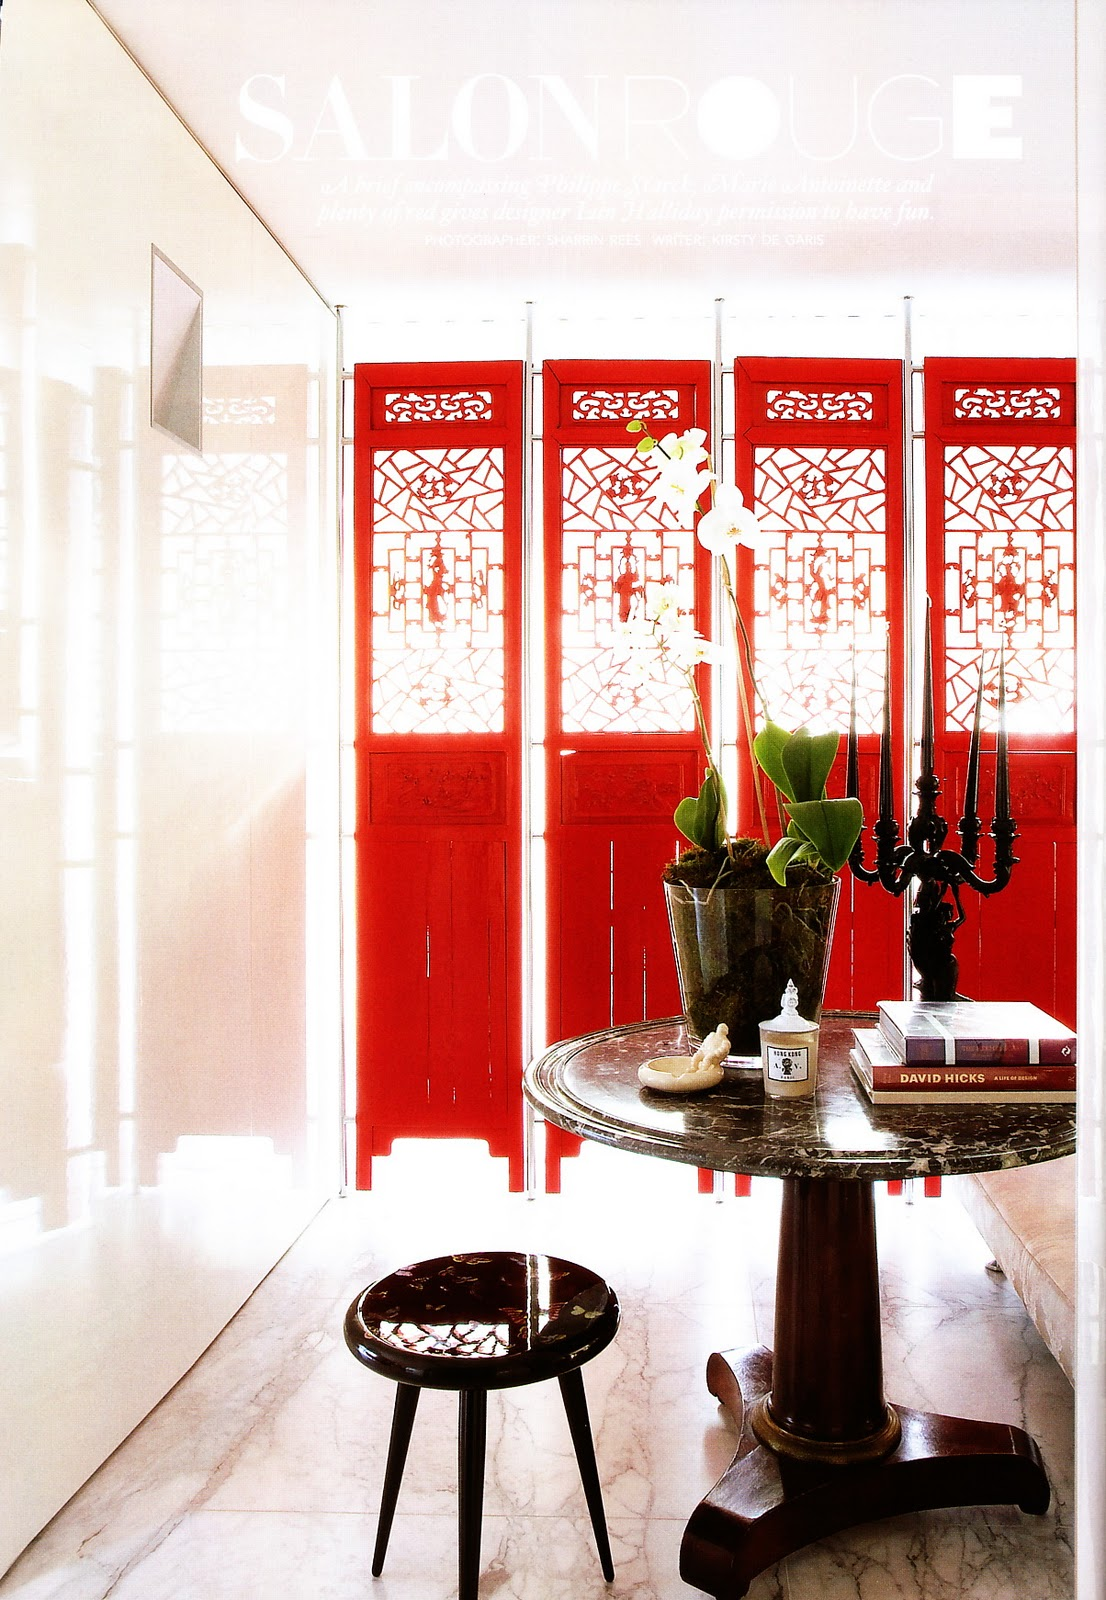 Red and white interior design images - Red white interior design ...